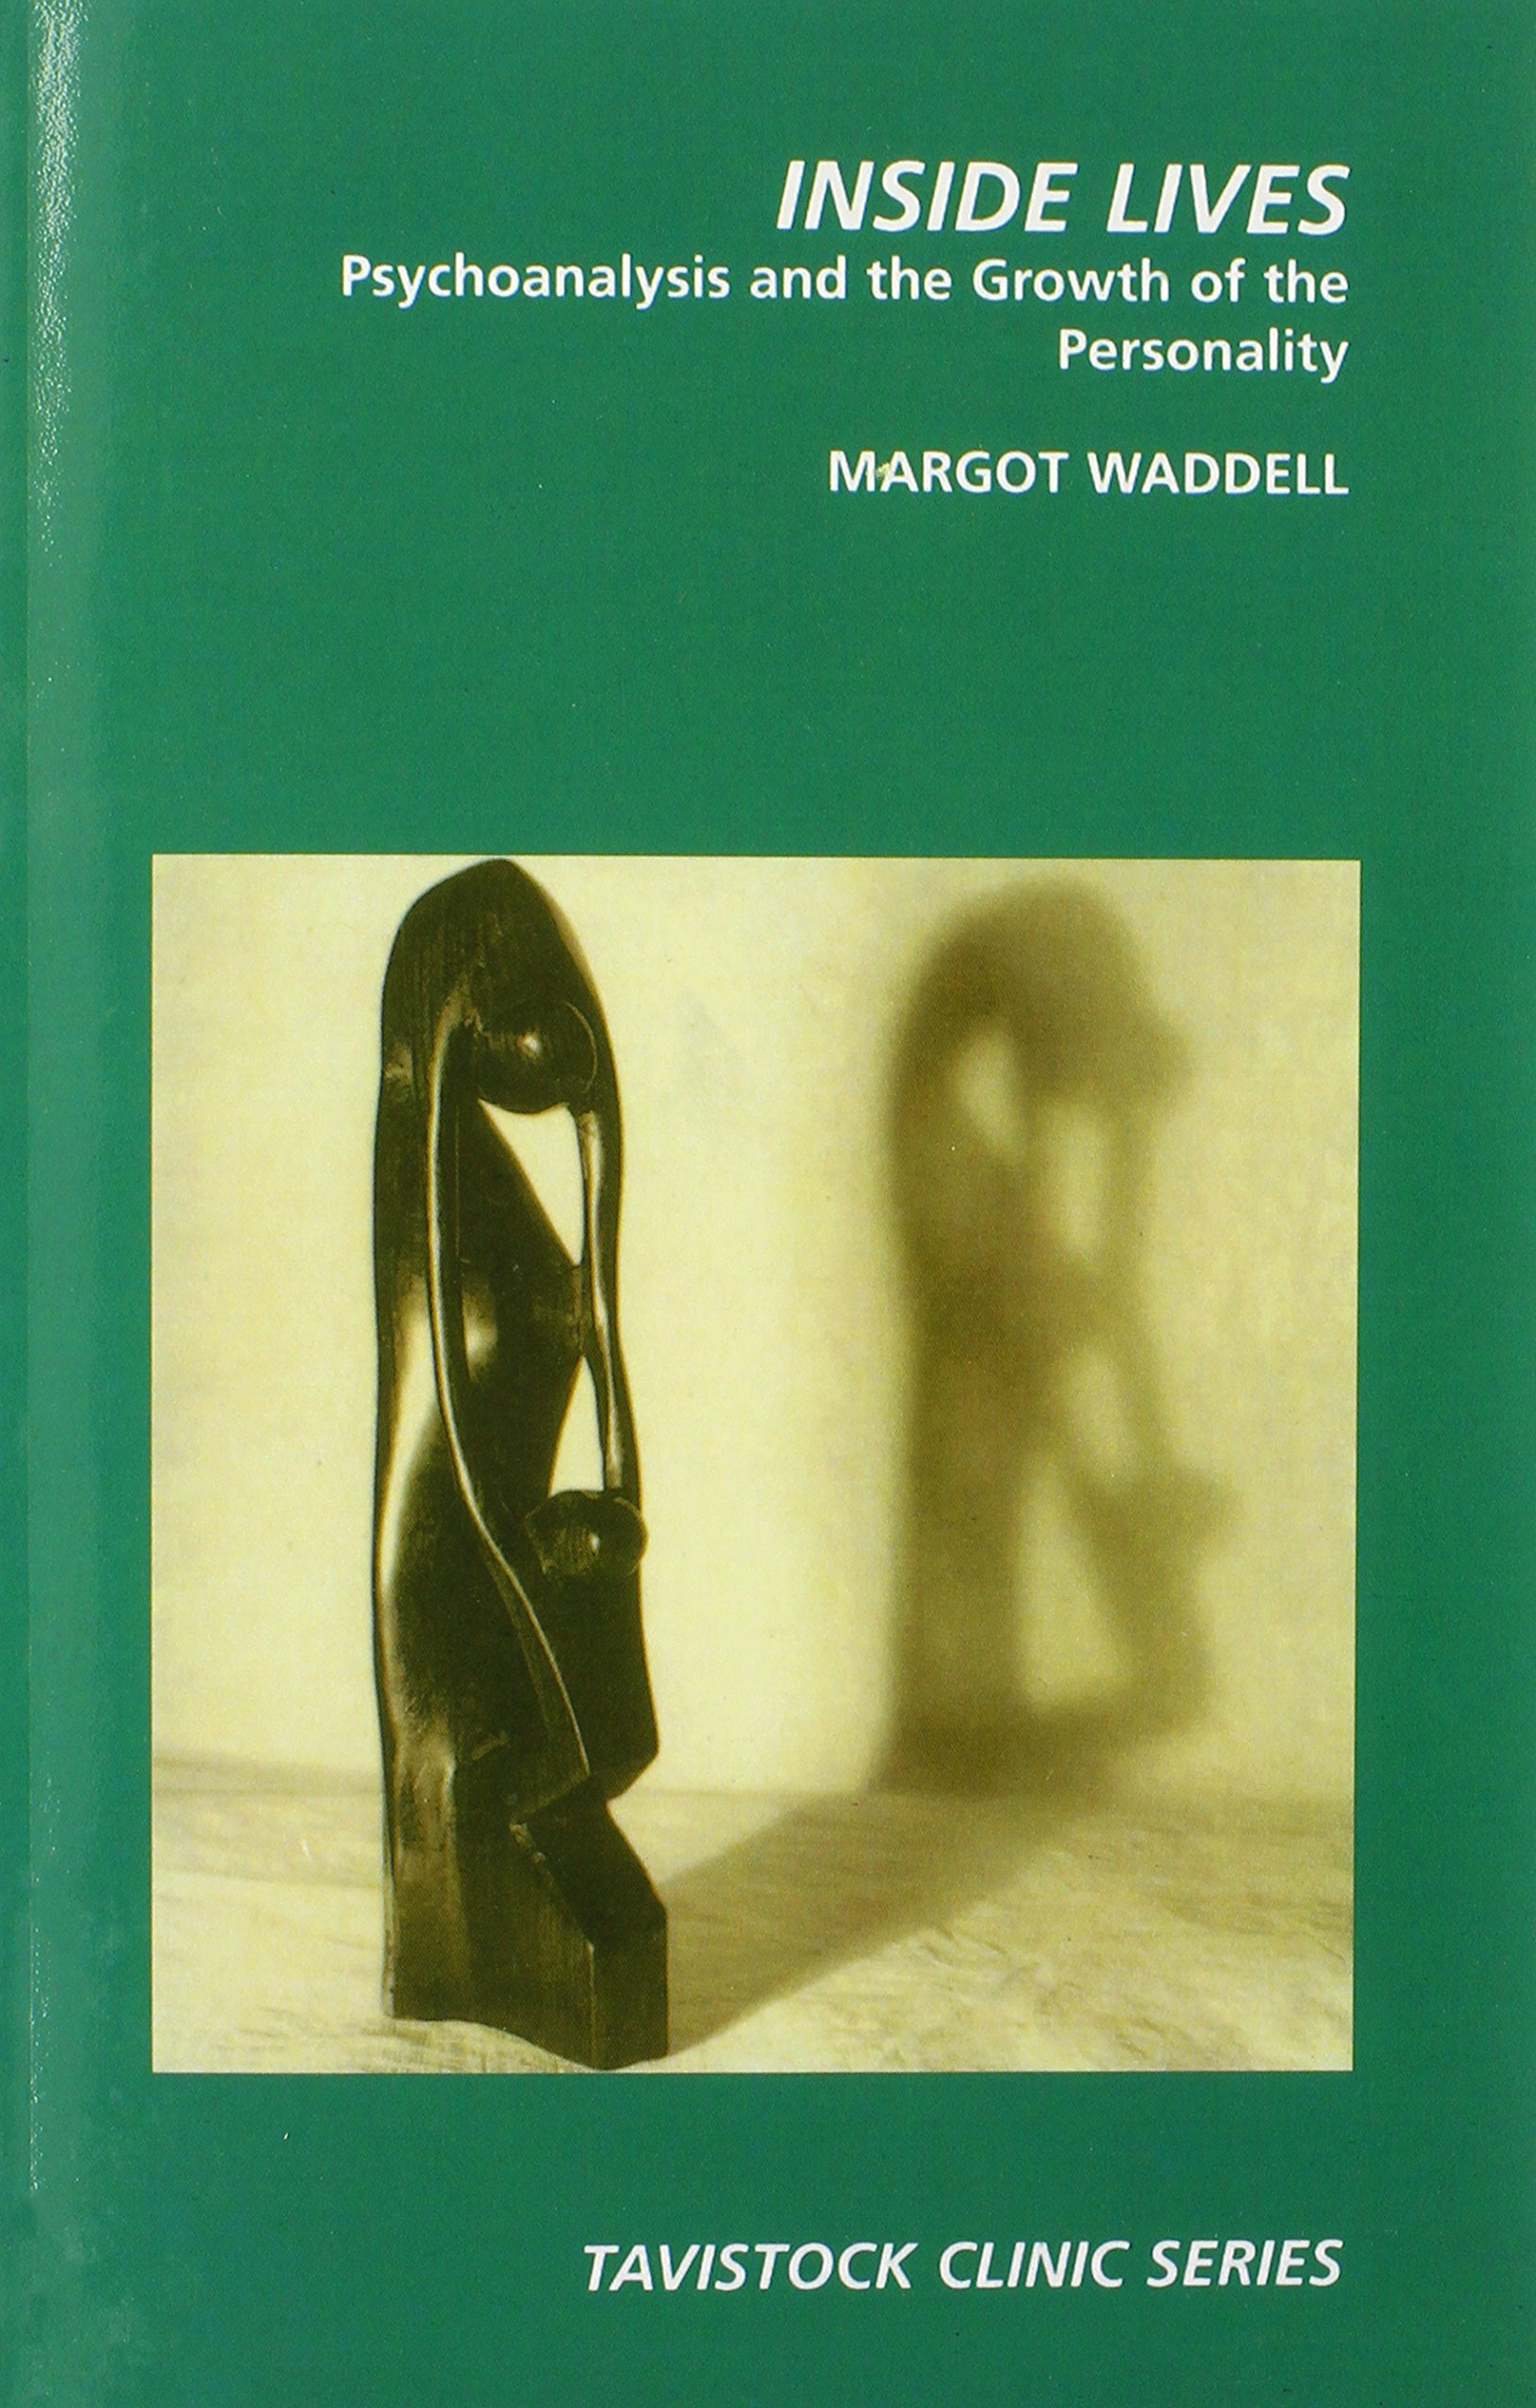 inside lives psychoanalysis and the growth of the personality tavistock clinic series